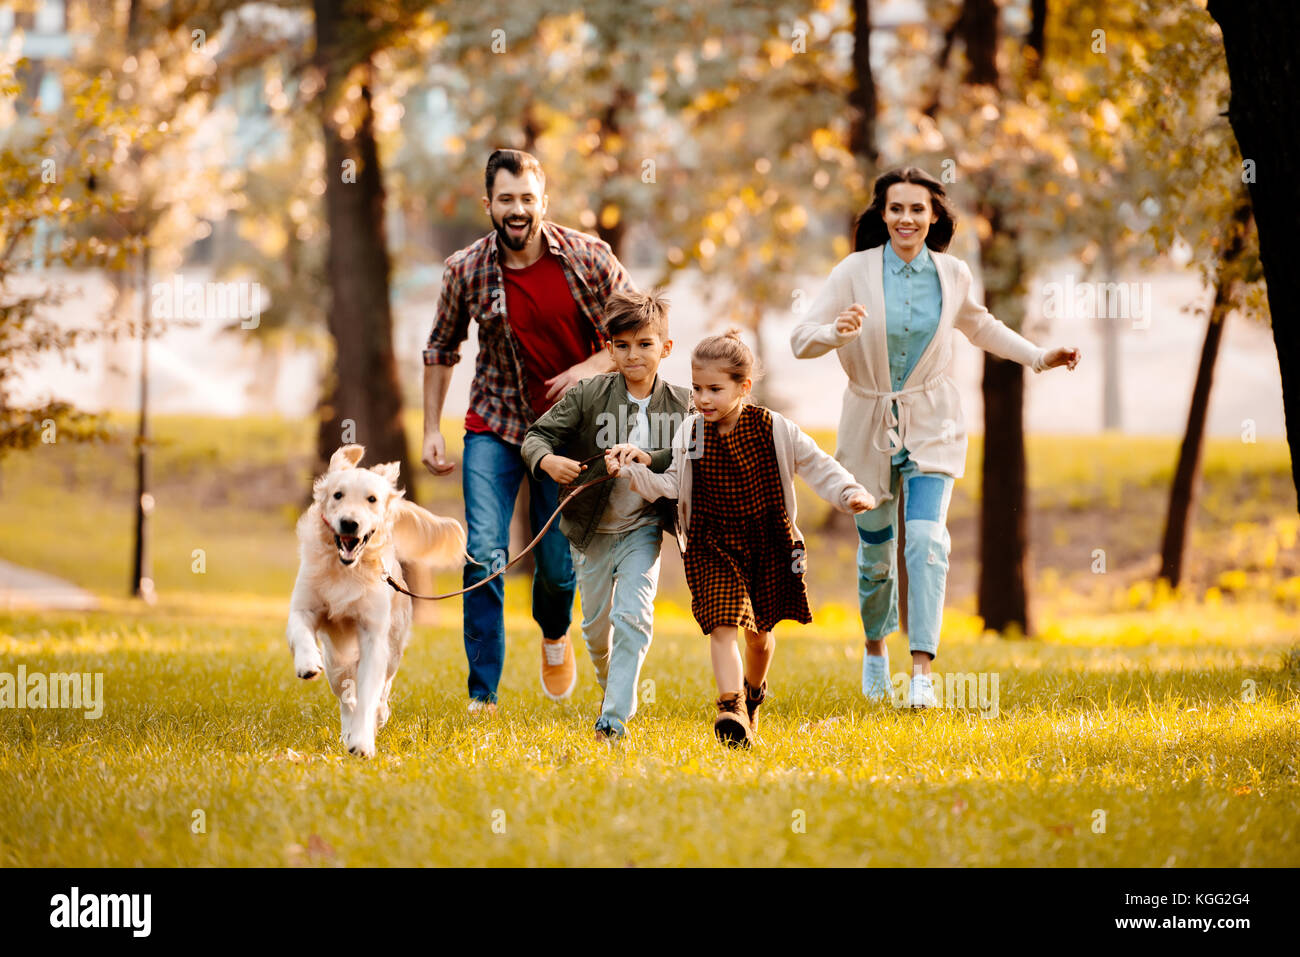 family running with dog in park - Stock Image